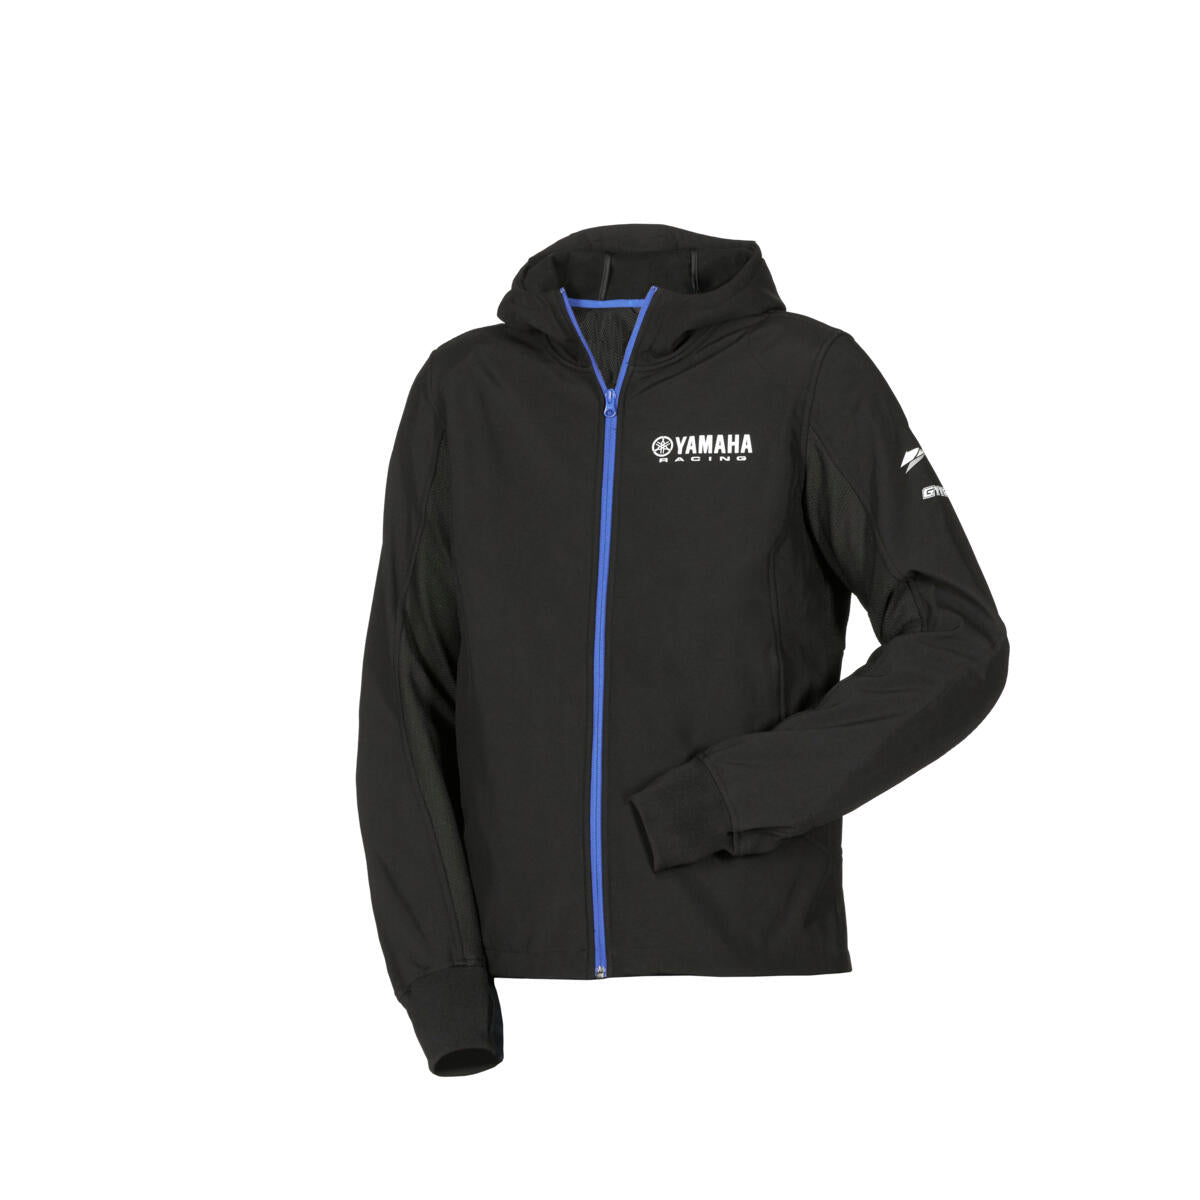 Paddock Blue Men's Urban Riding Jacket